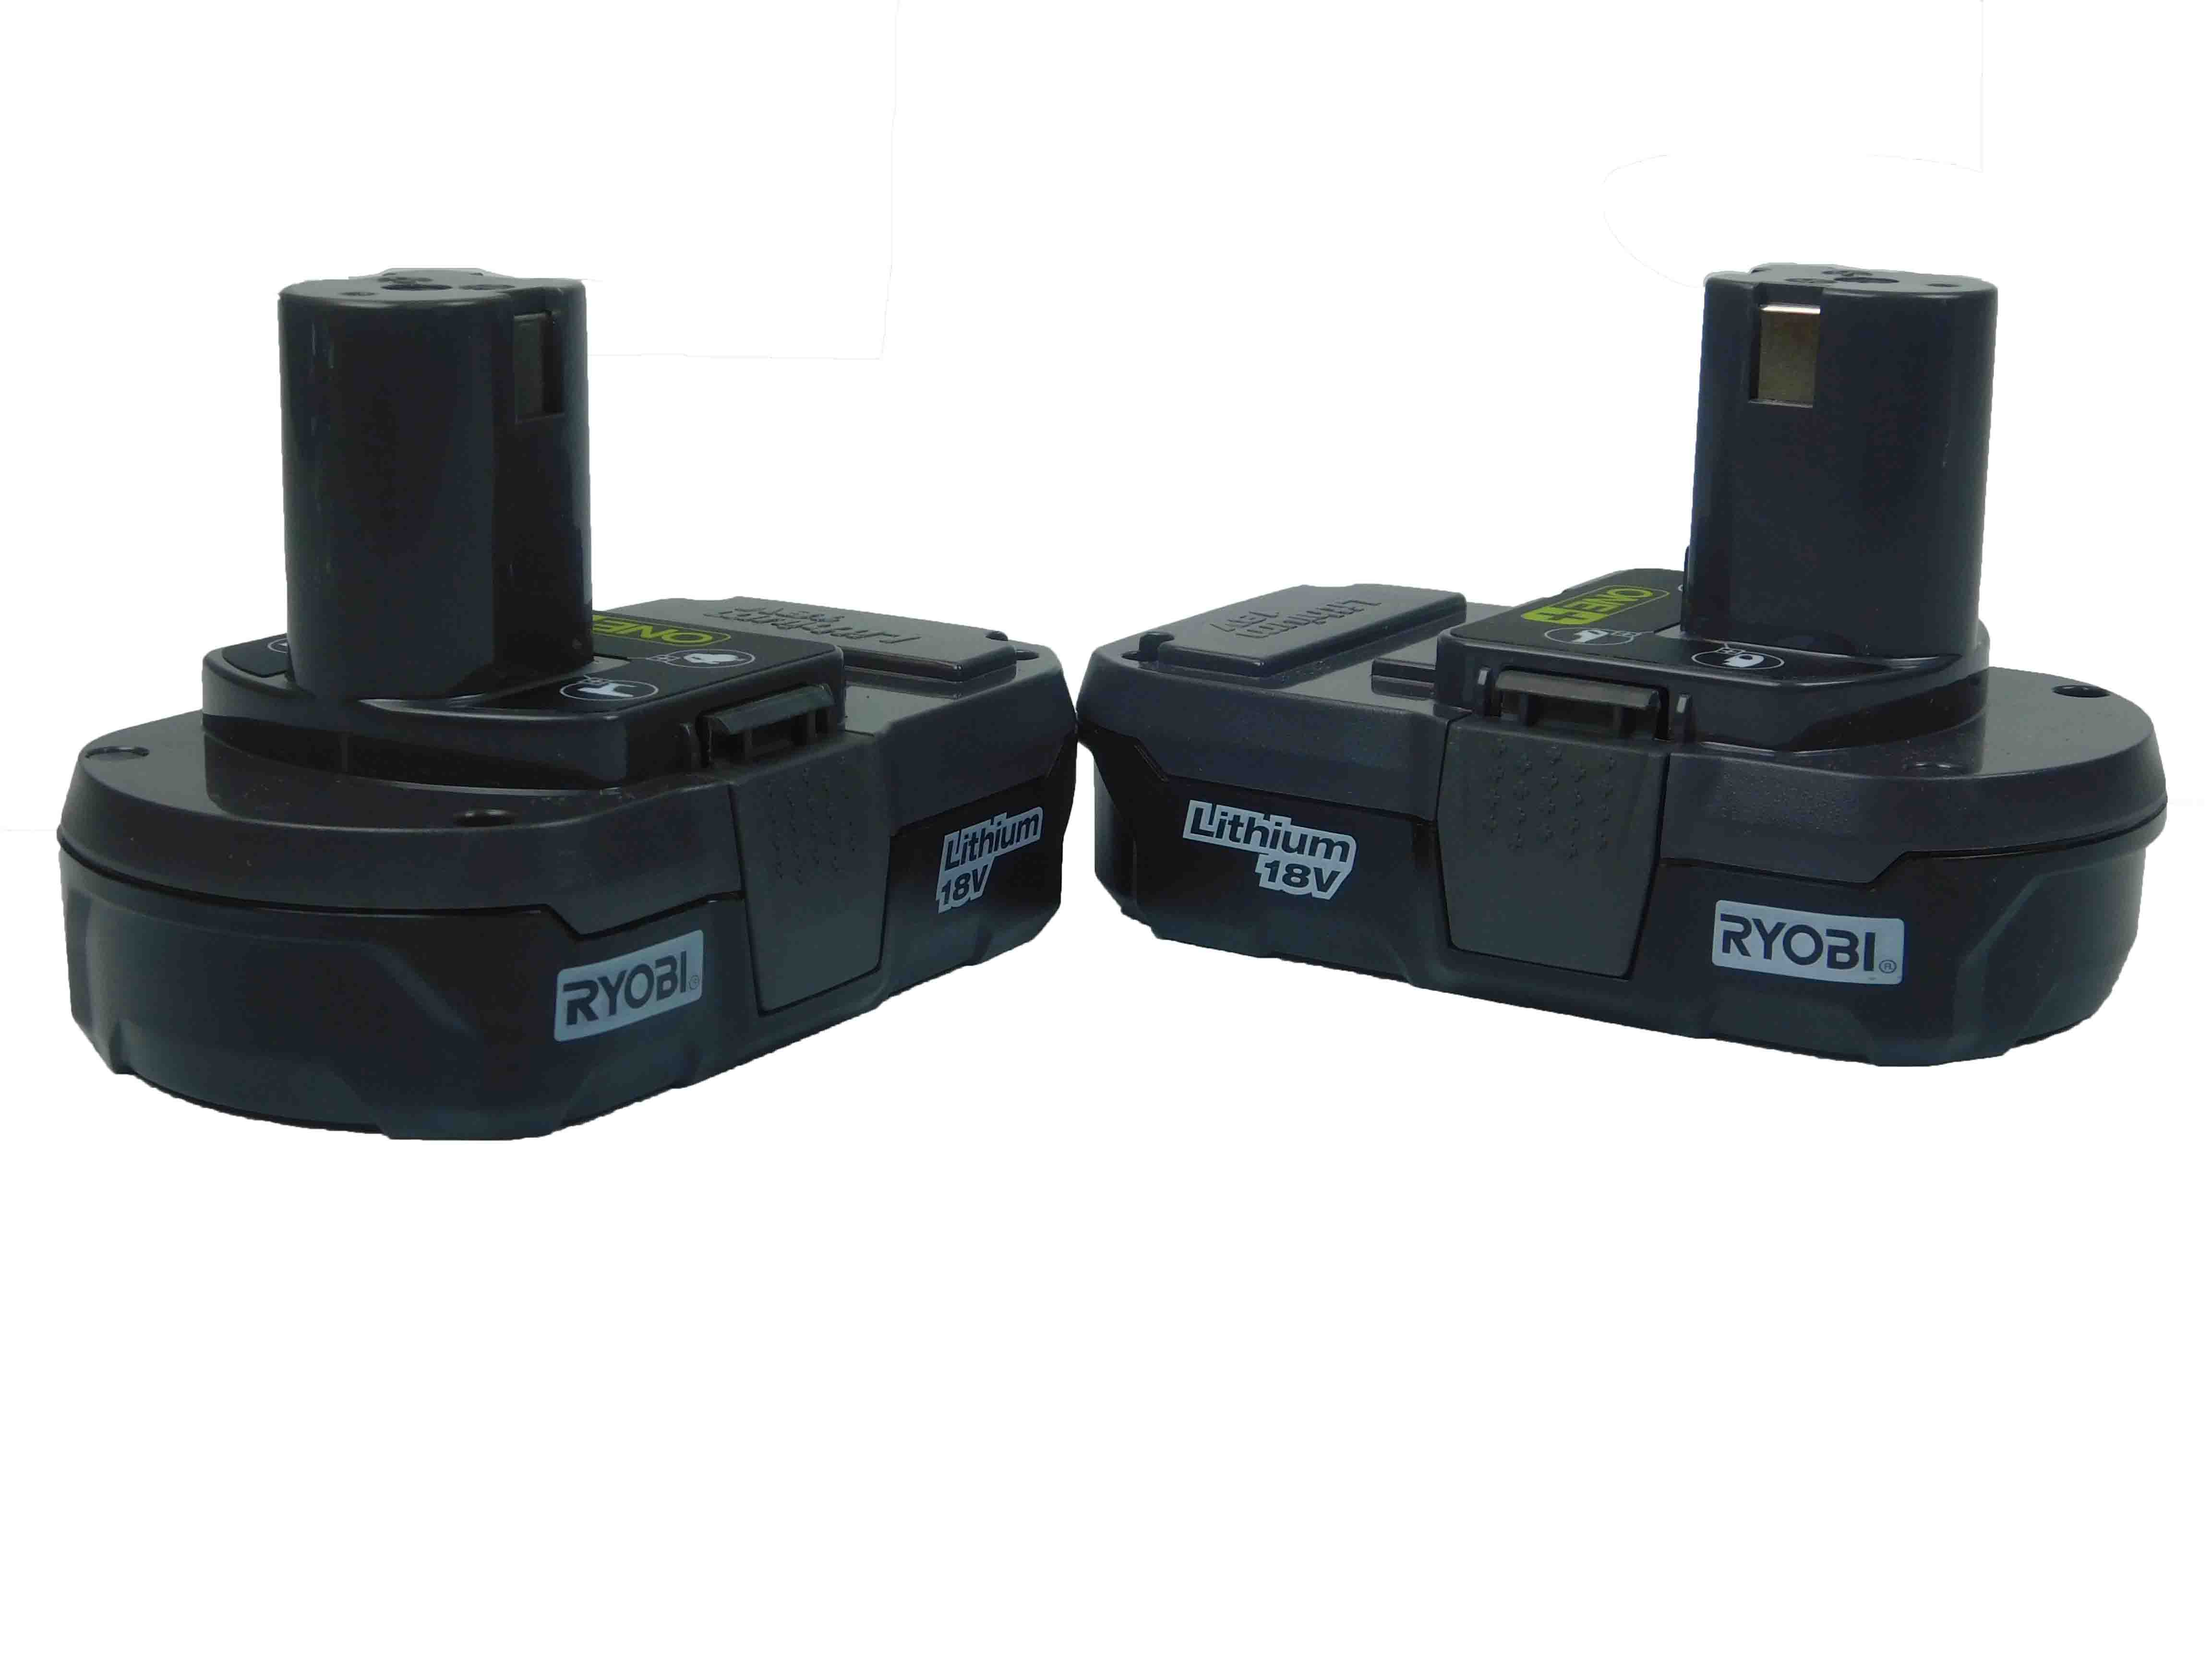 Ryobi-One-P102-18V-Lithium-Ion-Battery-Two-Pack-image-1